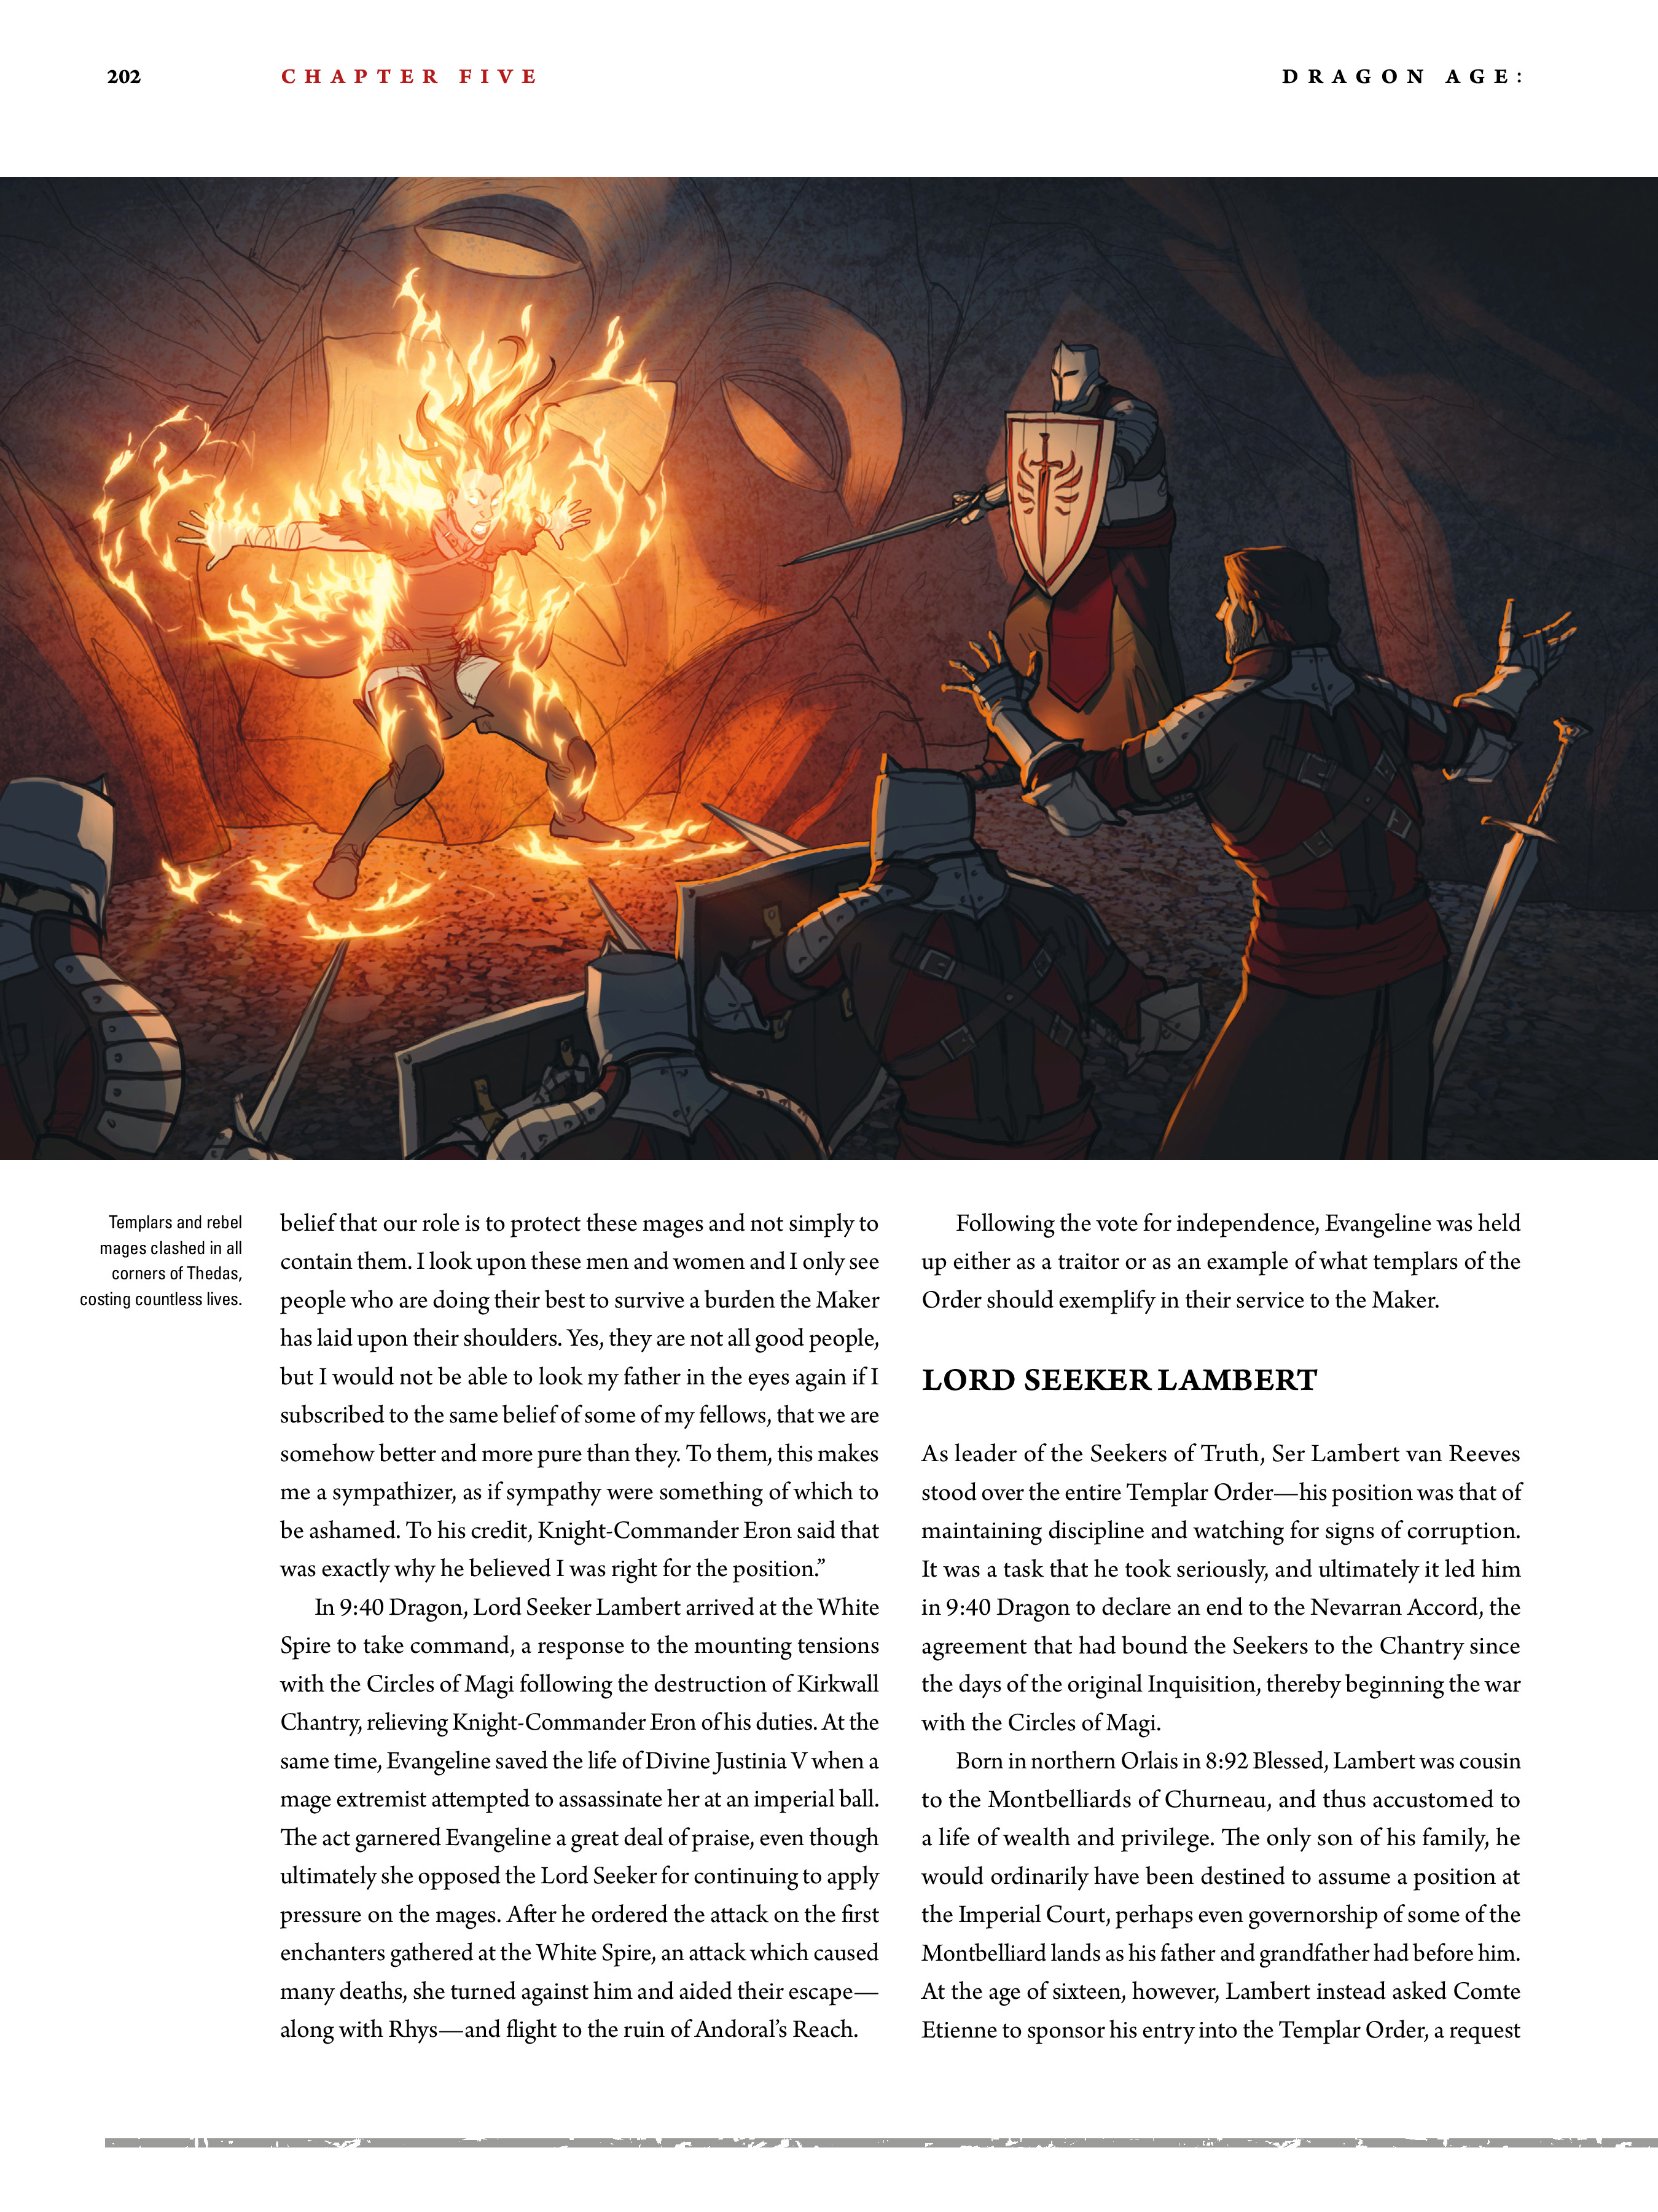 Read online Dragon Age: The World of Thedas comic -  Issue # TPB 2 - 197